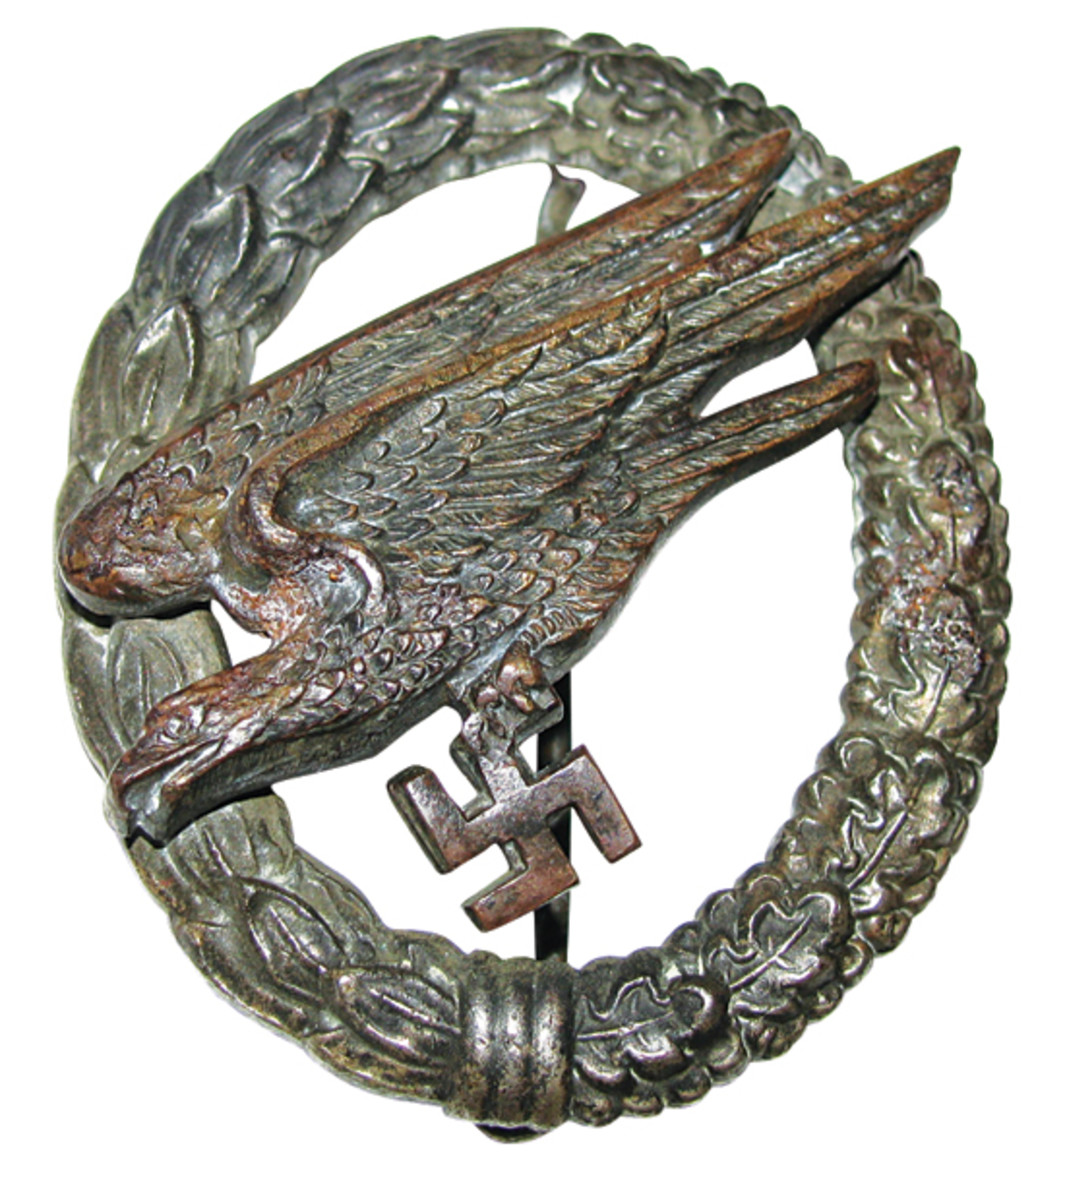 This well-worn paratrooper's badge shows signs of thinning plating on the wreath and eagle.